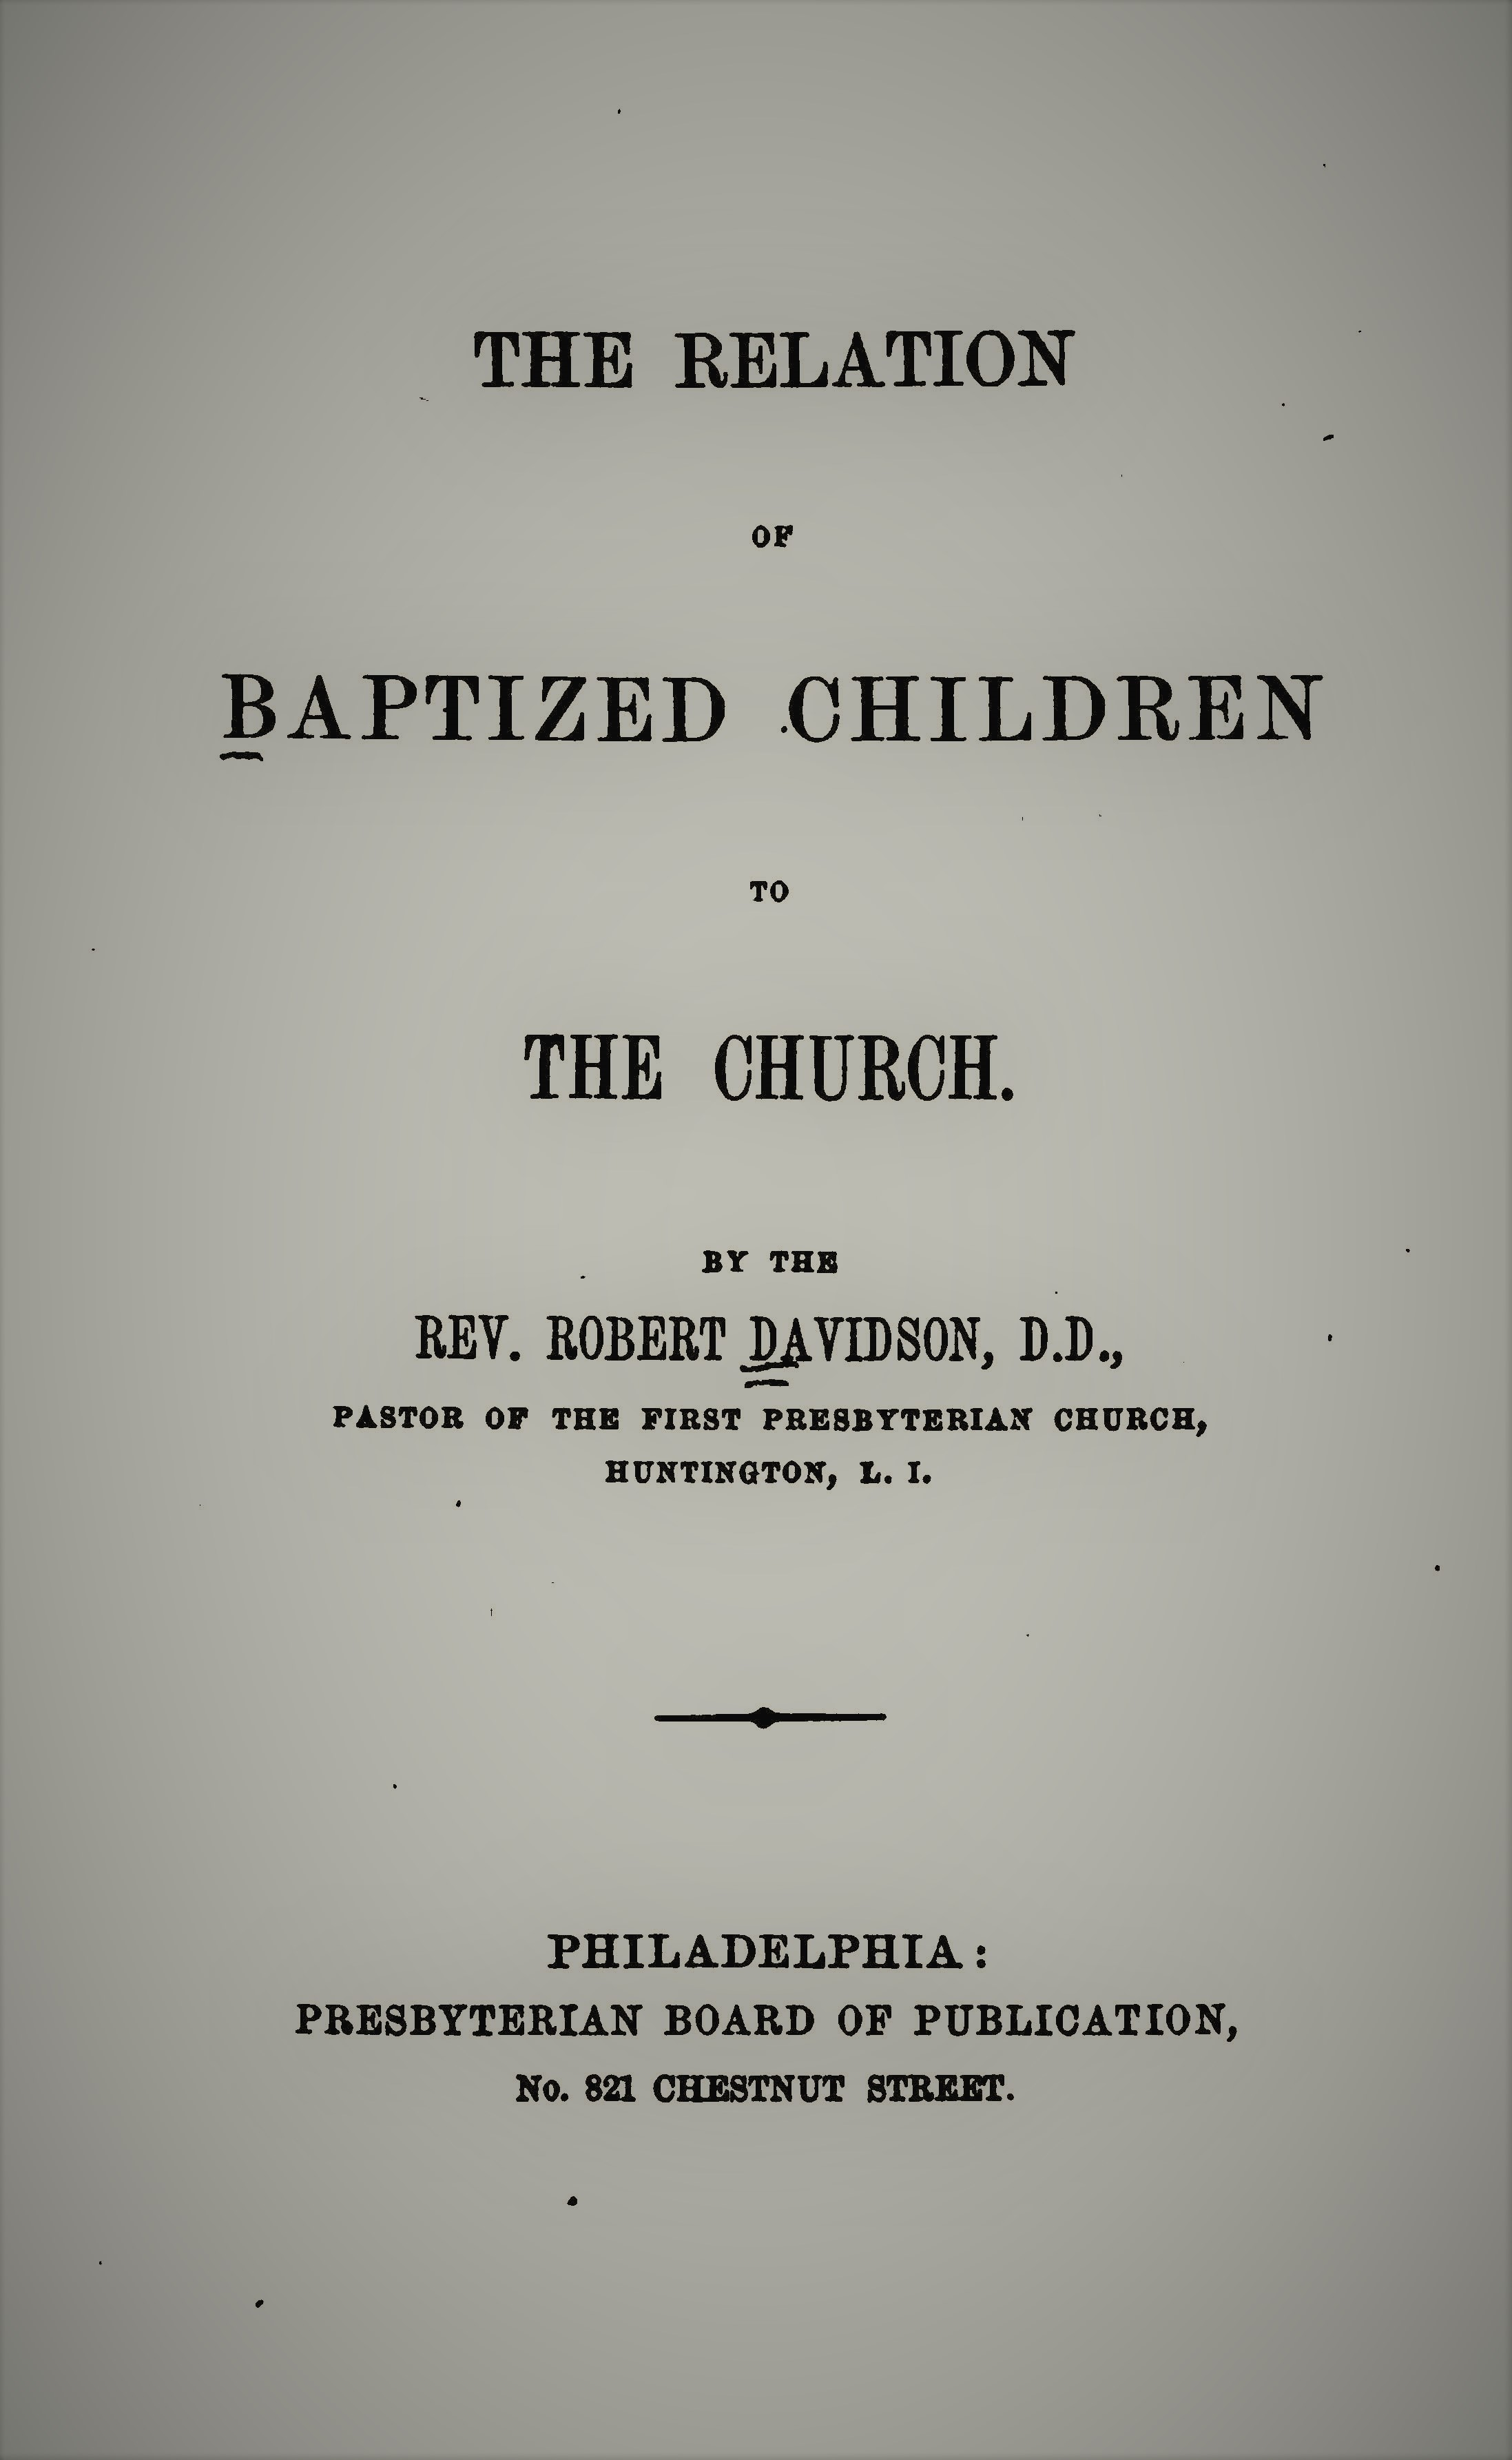 Davidson, Robert - Relation of Baptized Children to the Church.jpg